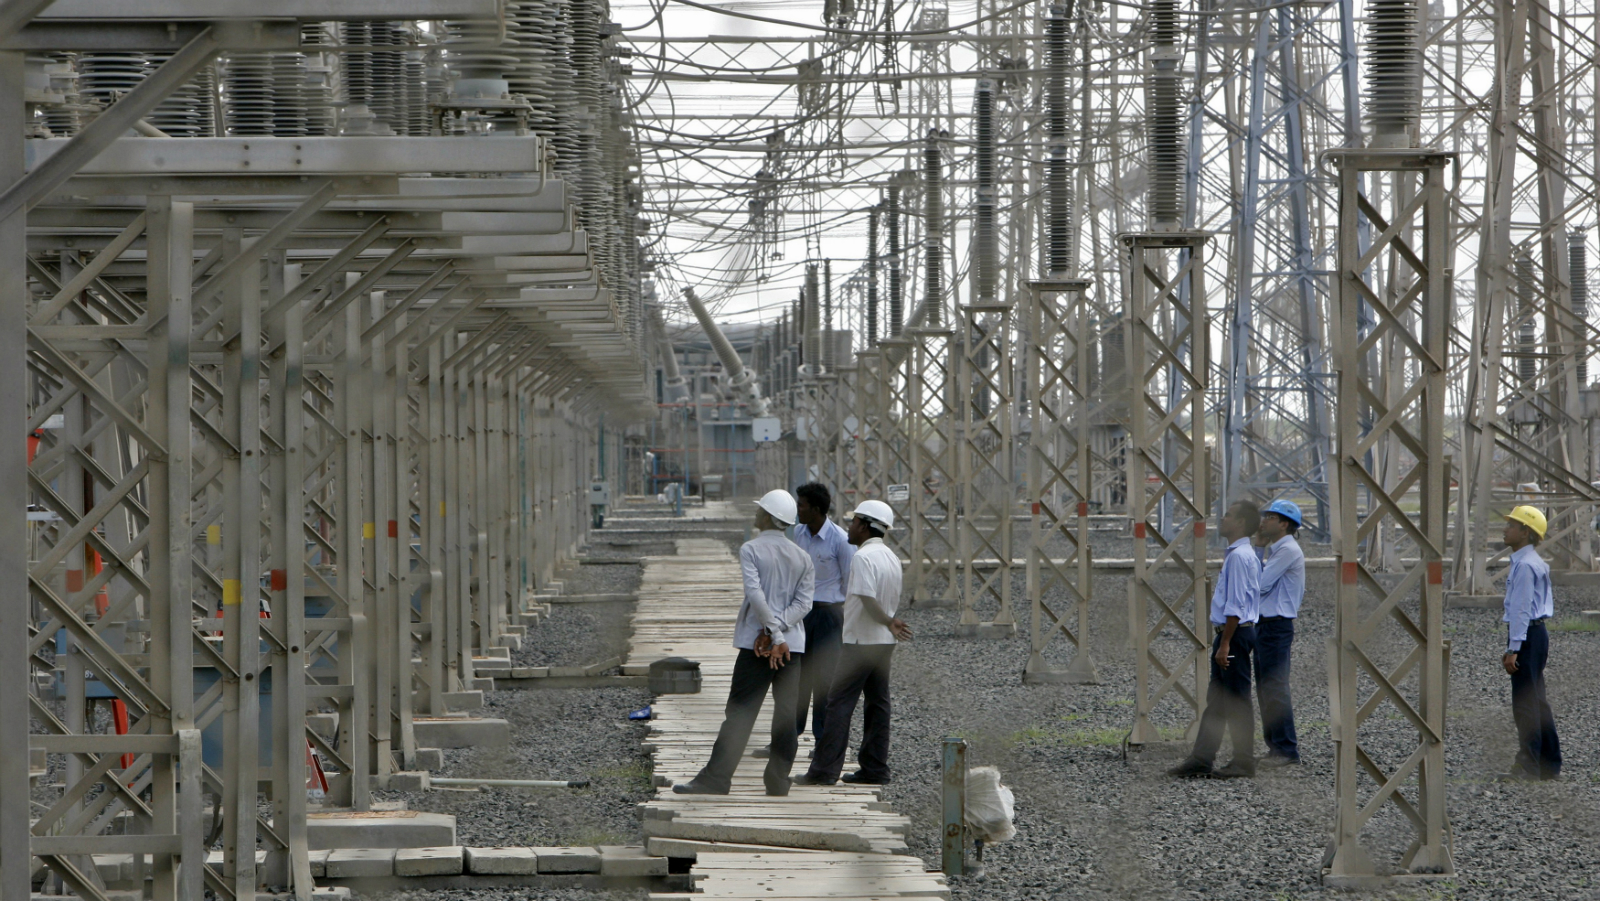 Engineers inspect electric transmission lines at Adani Power Company thermal power plant at Mundra in the western Indian state of Gujarat September 24, 2012. As global mining giants scale back their ambitions in Australia's coal sector, Indian billionaire Gautam Adani is showing no such caution and plans to push full-steam ahead with a $4.5 billion project in a bet on rising Indian demand. Picture taken September 24, 2012. To match Interview INDIA-ADANI/